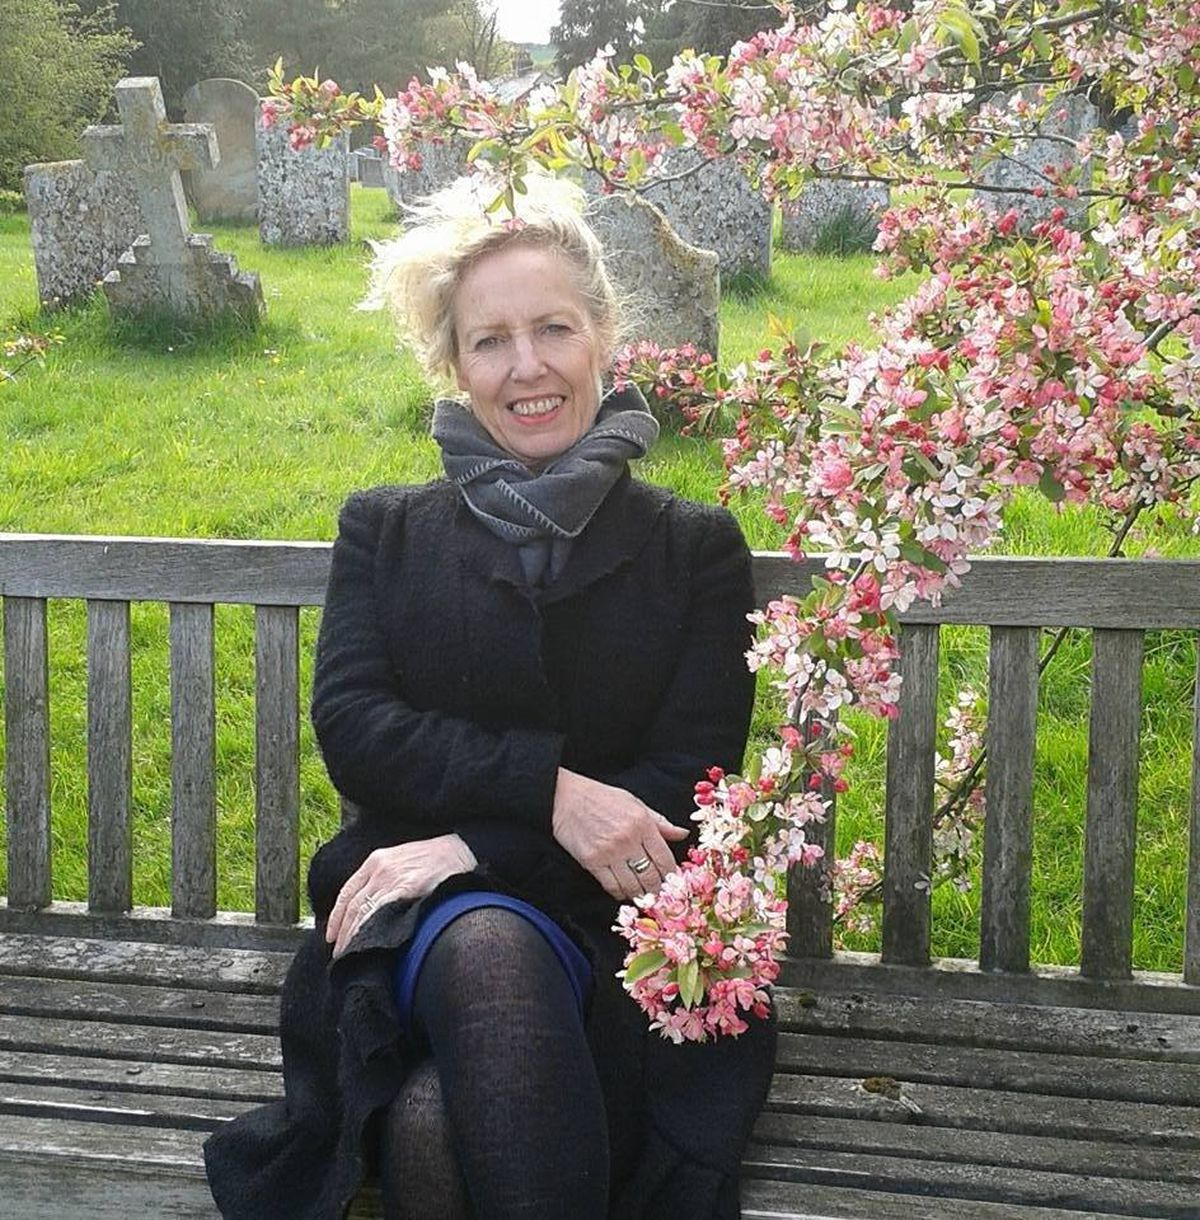 Carole Thorpe-Gunner, who led free art workshops across the county for people with movement disorders, was supported by an Arts Council England project grant